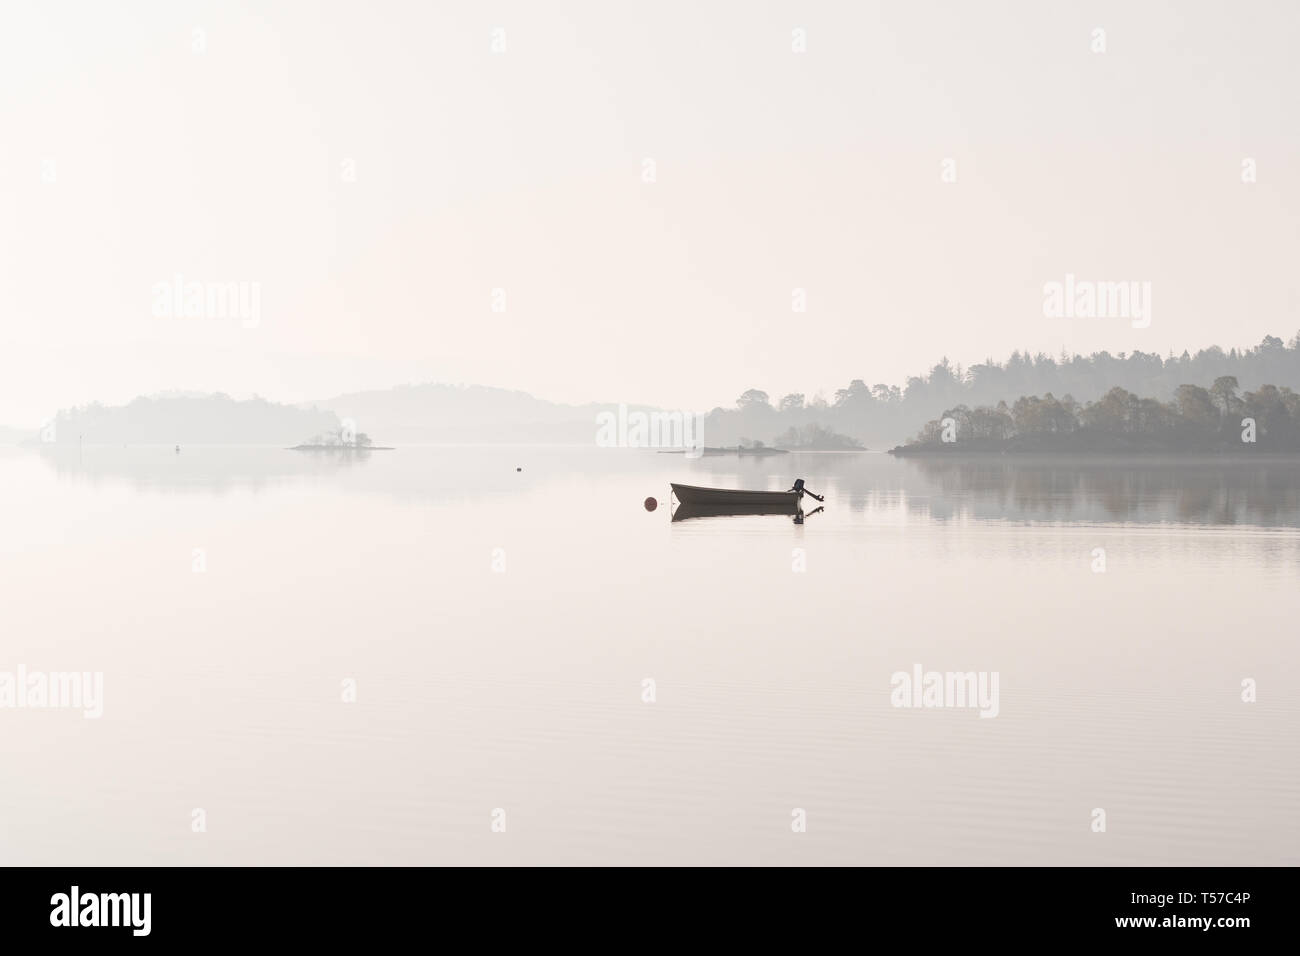 Luss, Loch Lomond, Scotland, UK. 22nd Apr, 2019. uk weather - a glorious still and hazy morning at Luss, Loch Lomond ahead of what is forecast to be a beautiful sunny day Credit: Kay Roxby/Alamy Live News Stock Photo